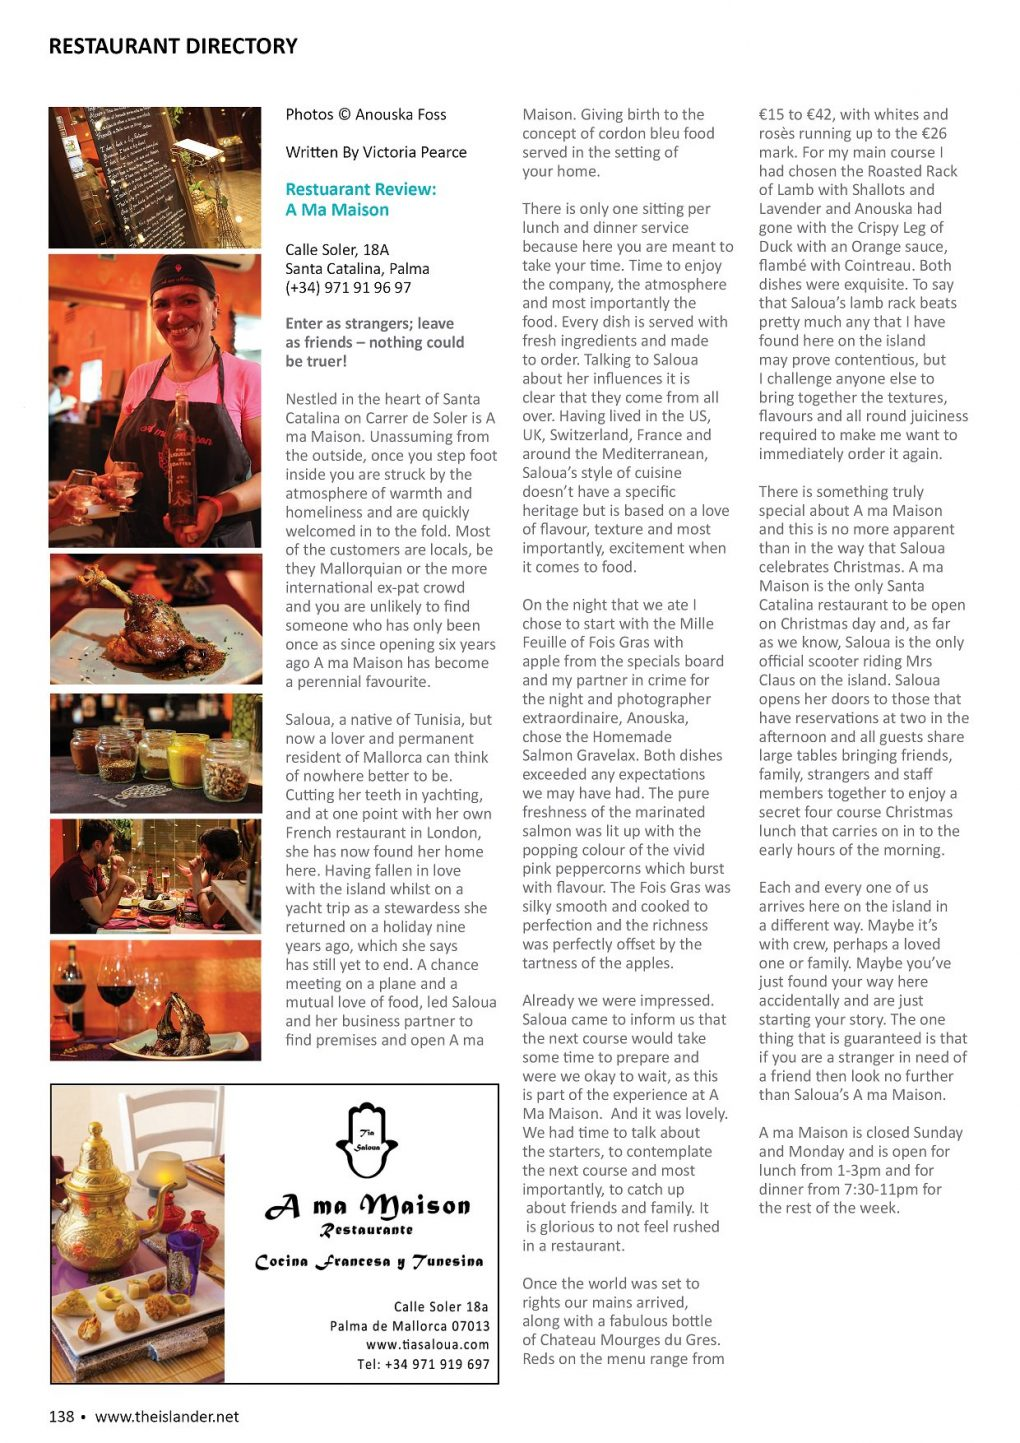 A ma Maison review published in The Islander Magazine Interview by Victoria Pearce